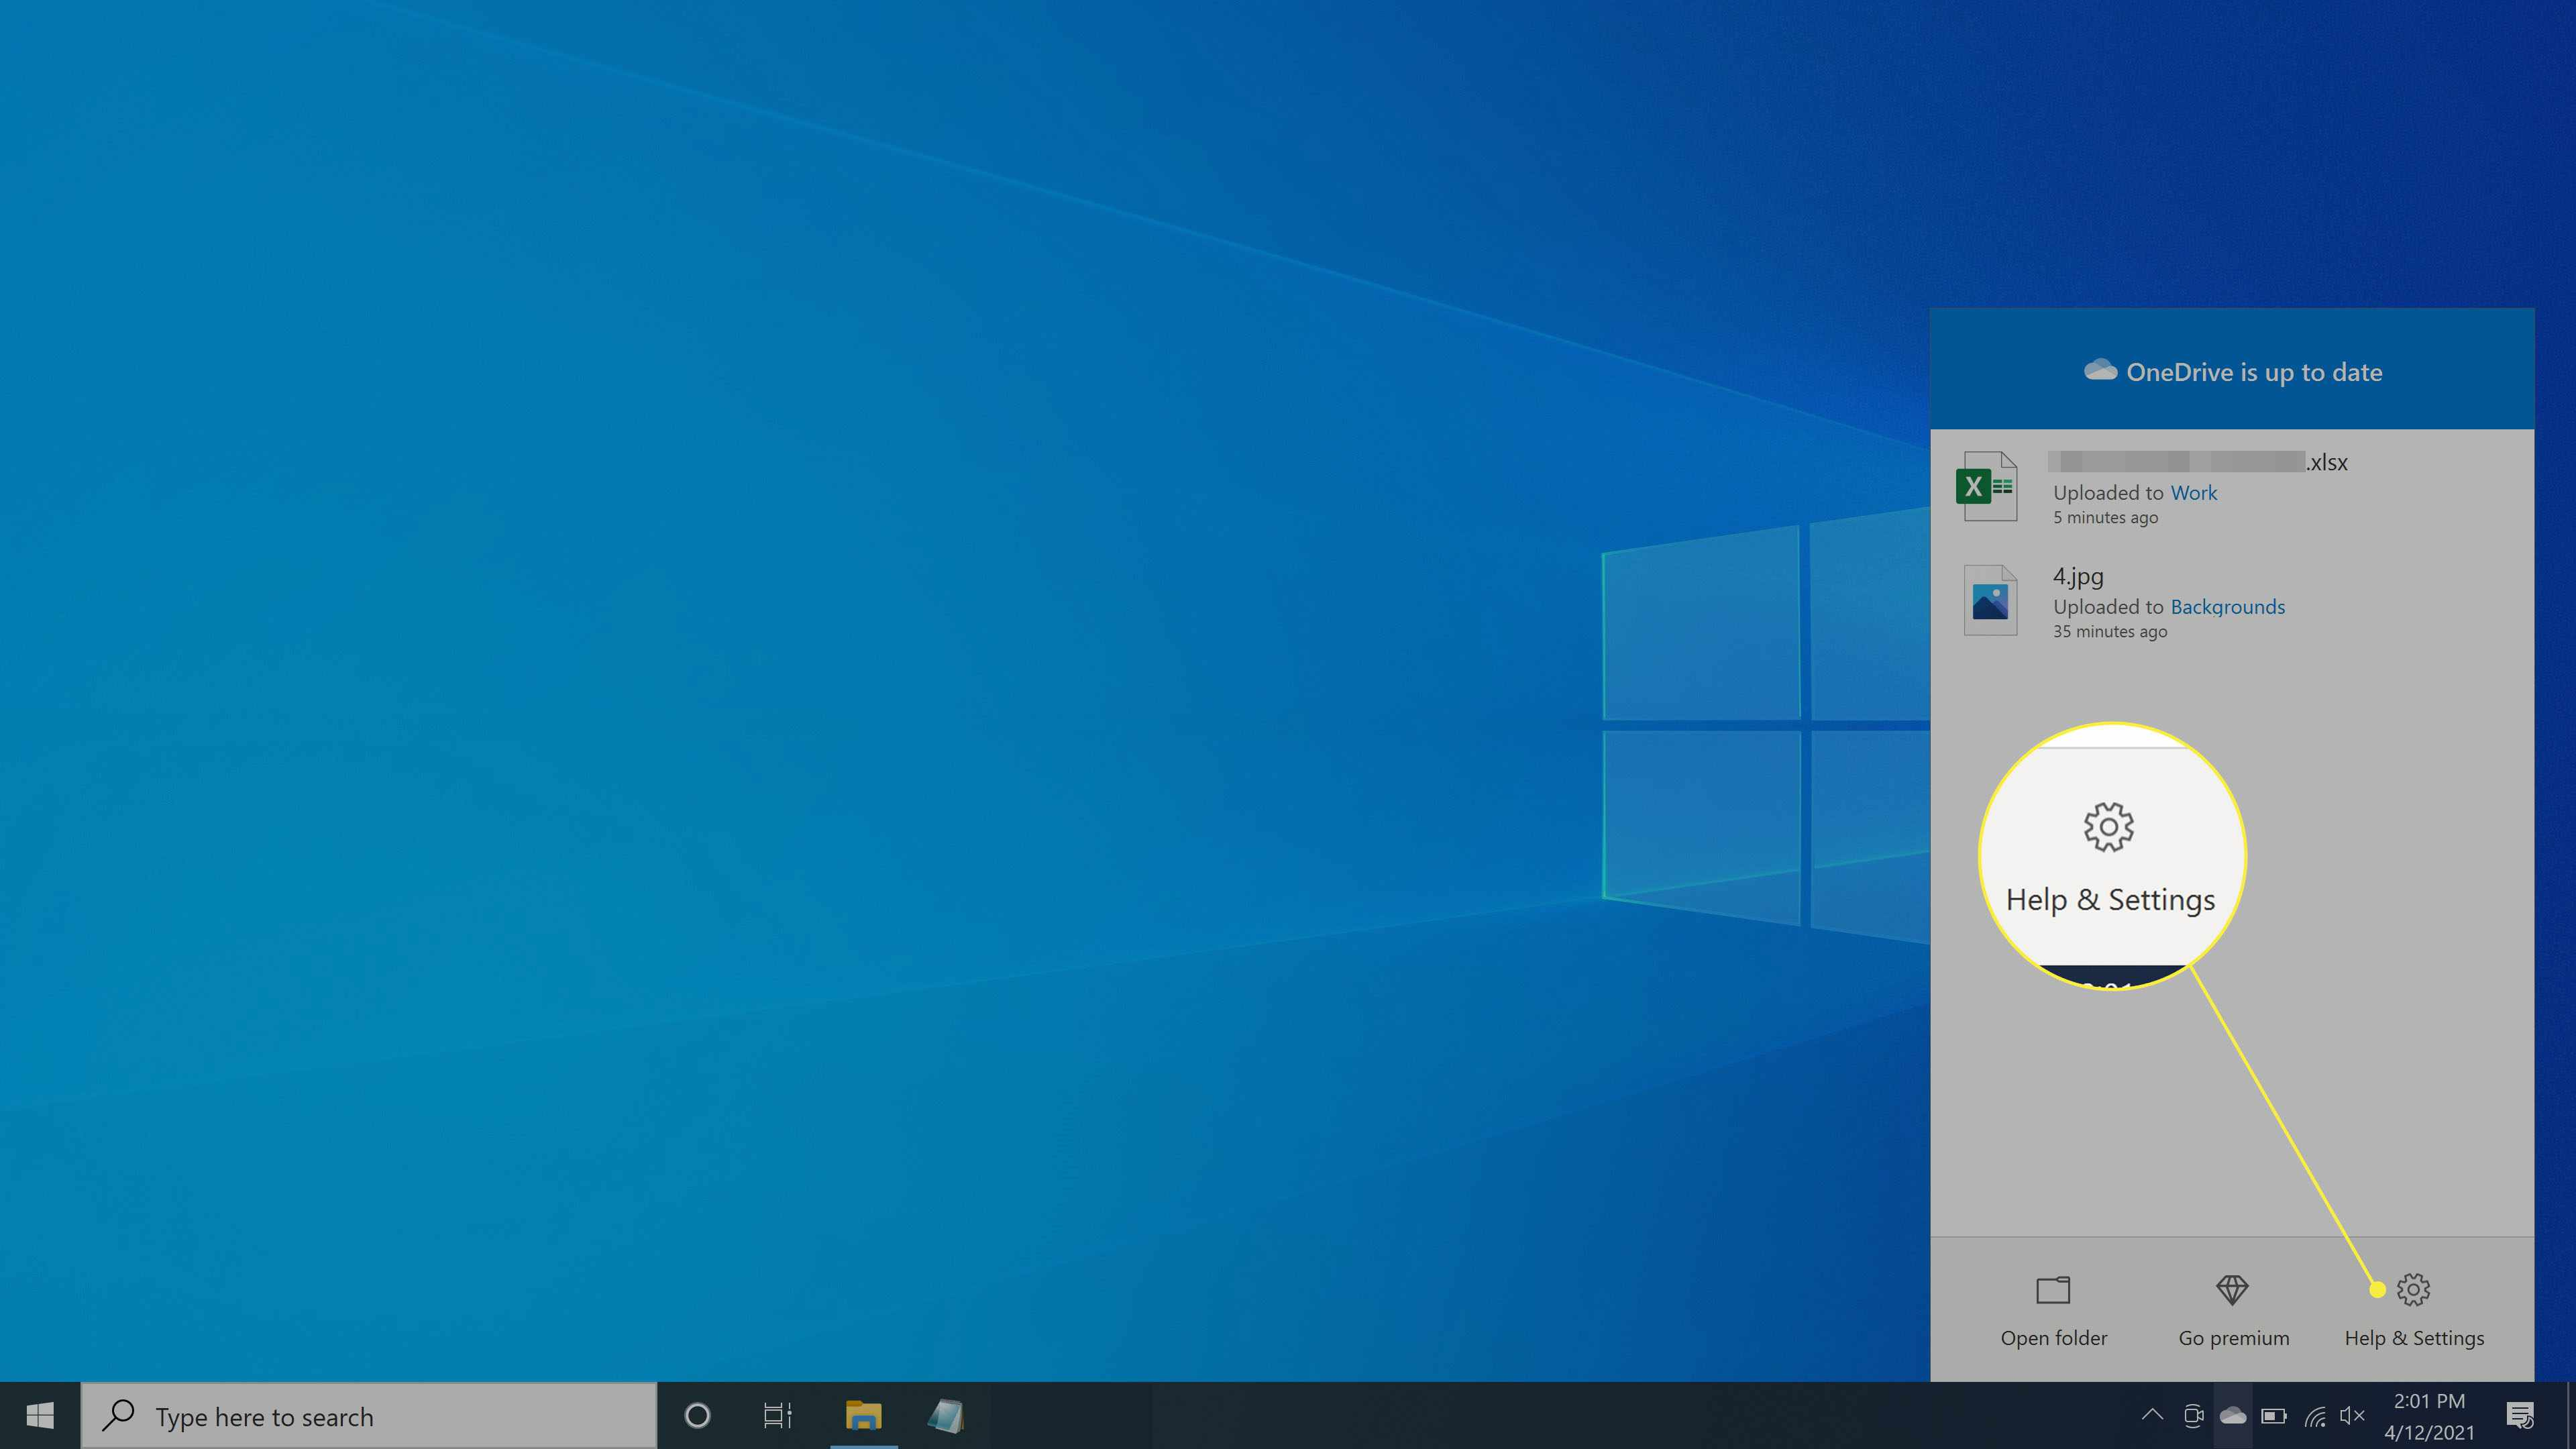 The Help and Settings option under OneDrive on Windows 10